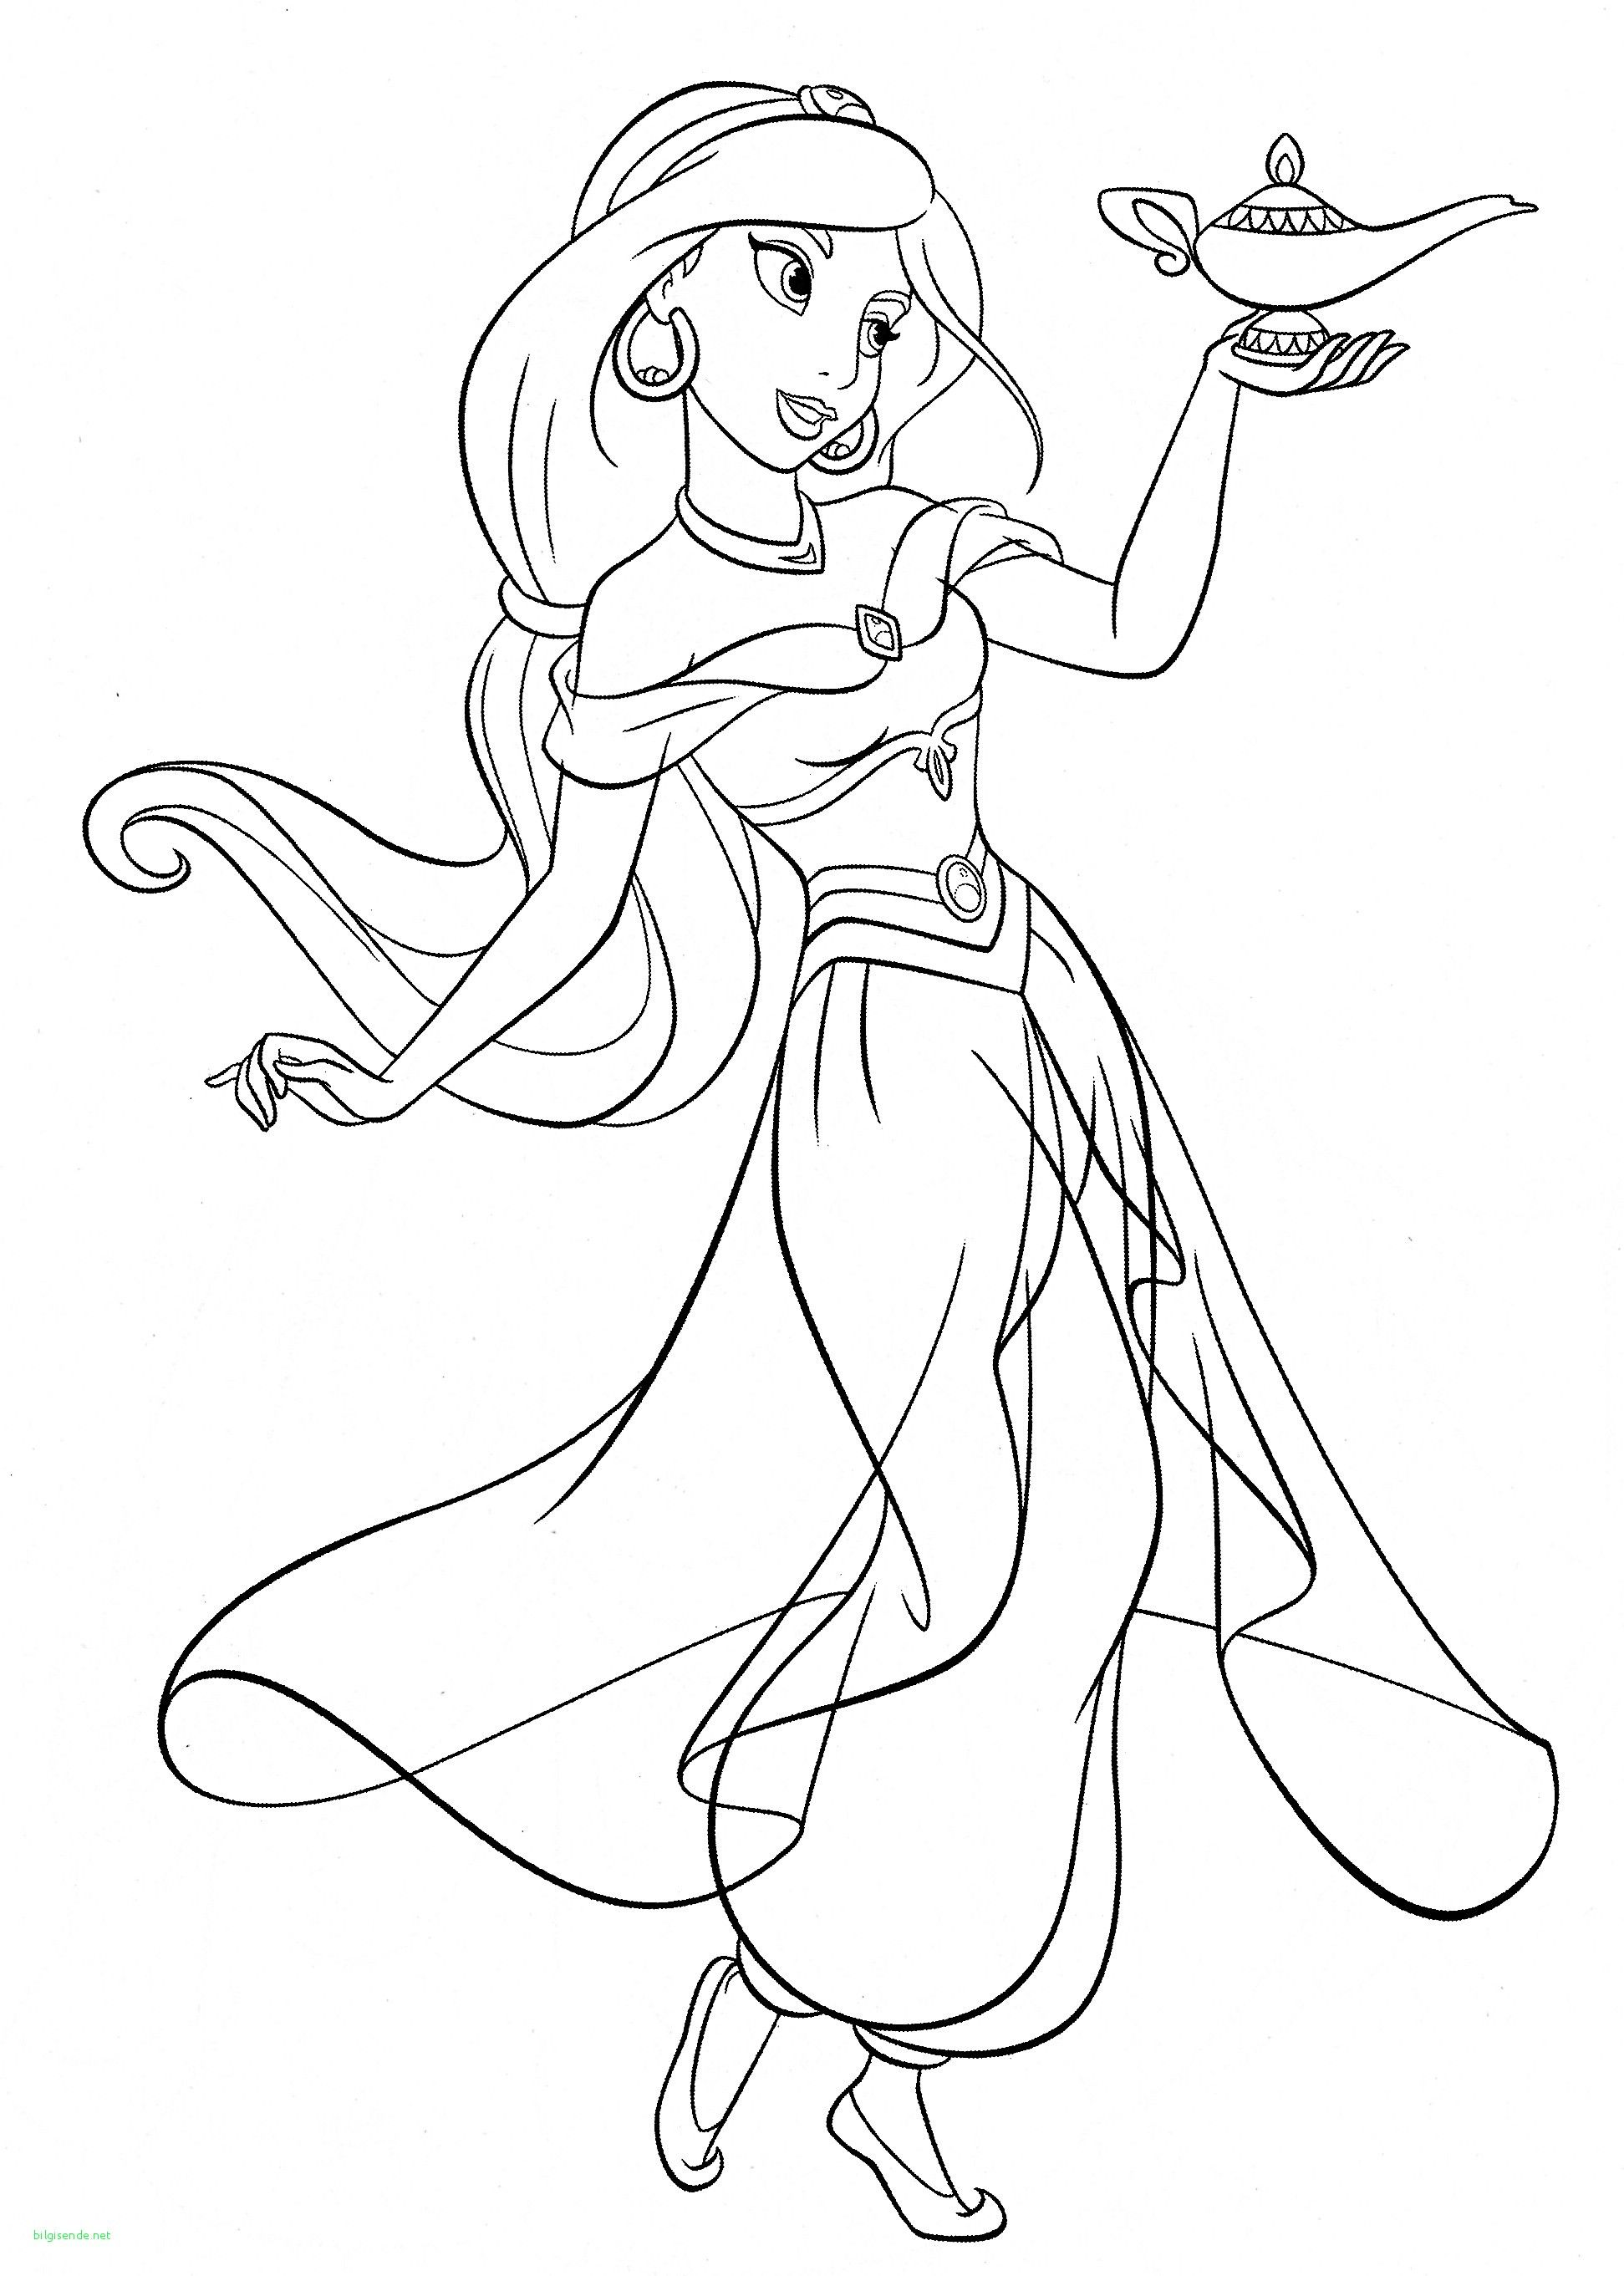 Disney Princess Coloring Pages Jasmine (With Images) Disney